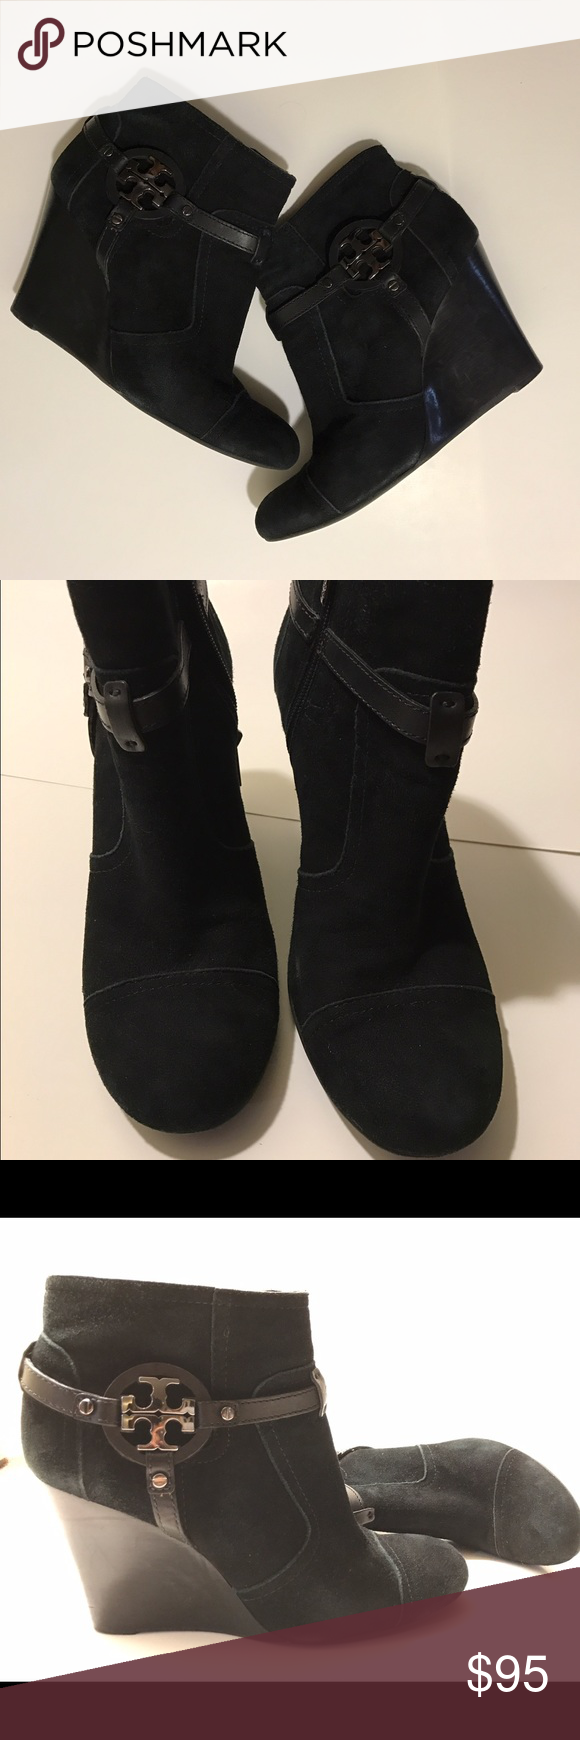 c1caebd7f2a Tory Burch  Aaden  Wedge Bootie Size 11 but runs small. It will fit a 10  perfectly. Tory Burch Suede Wedges! Very stylish and a Wedge is always  comfy to me.